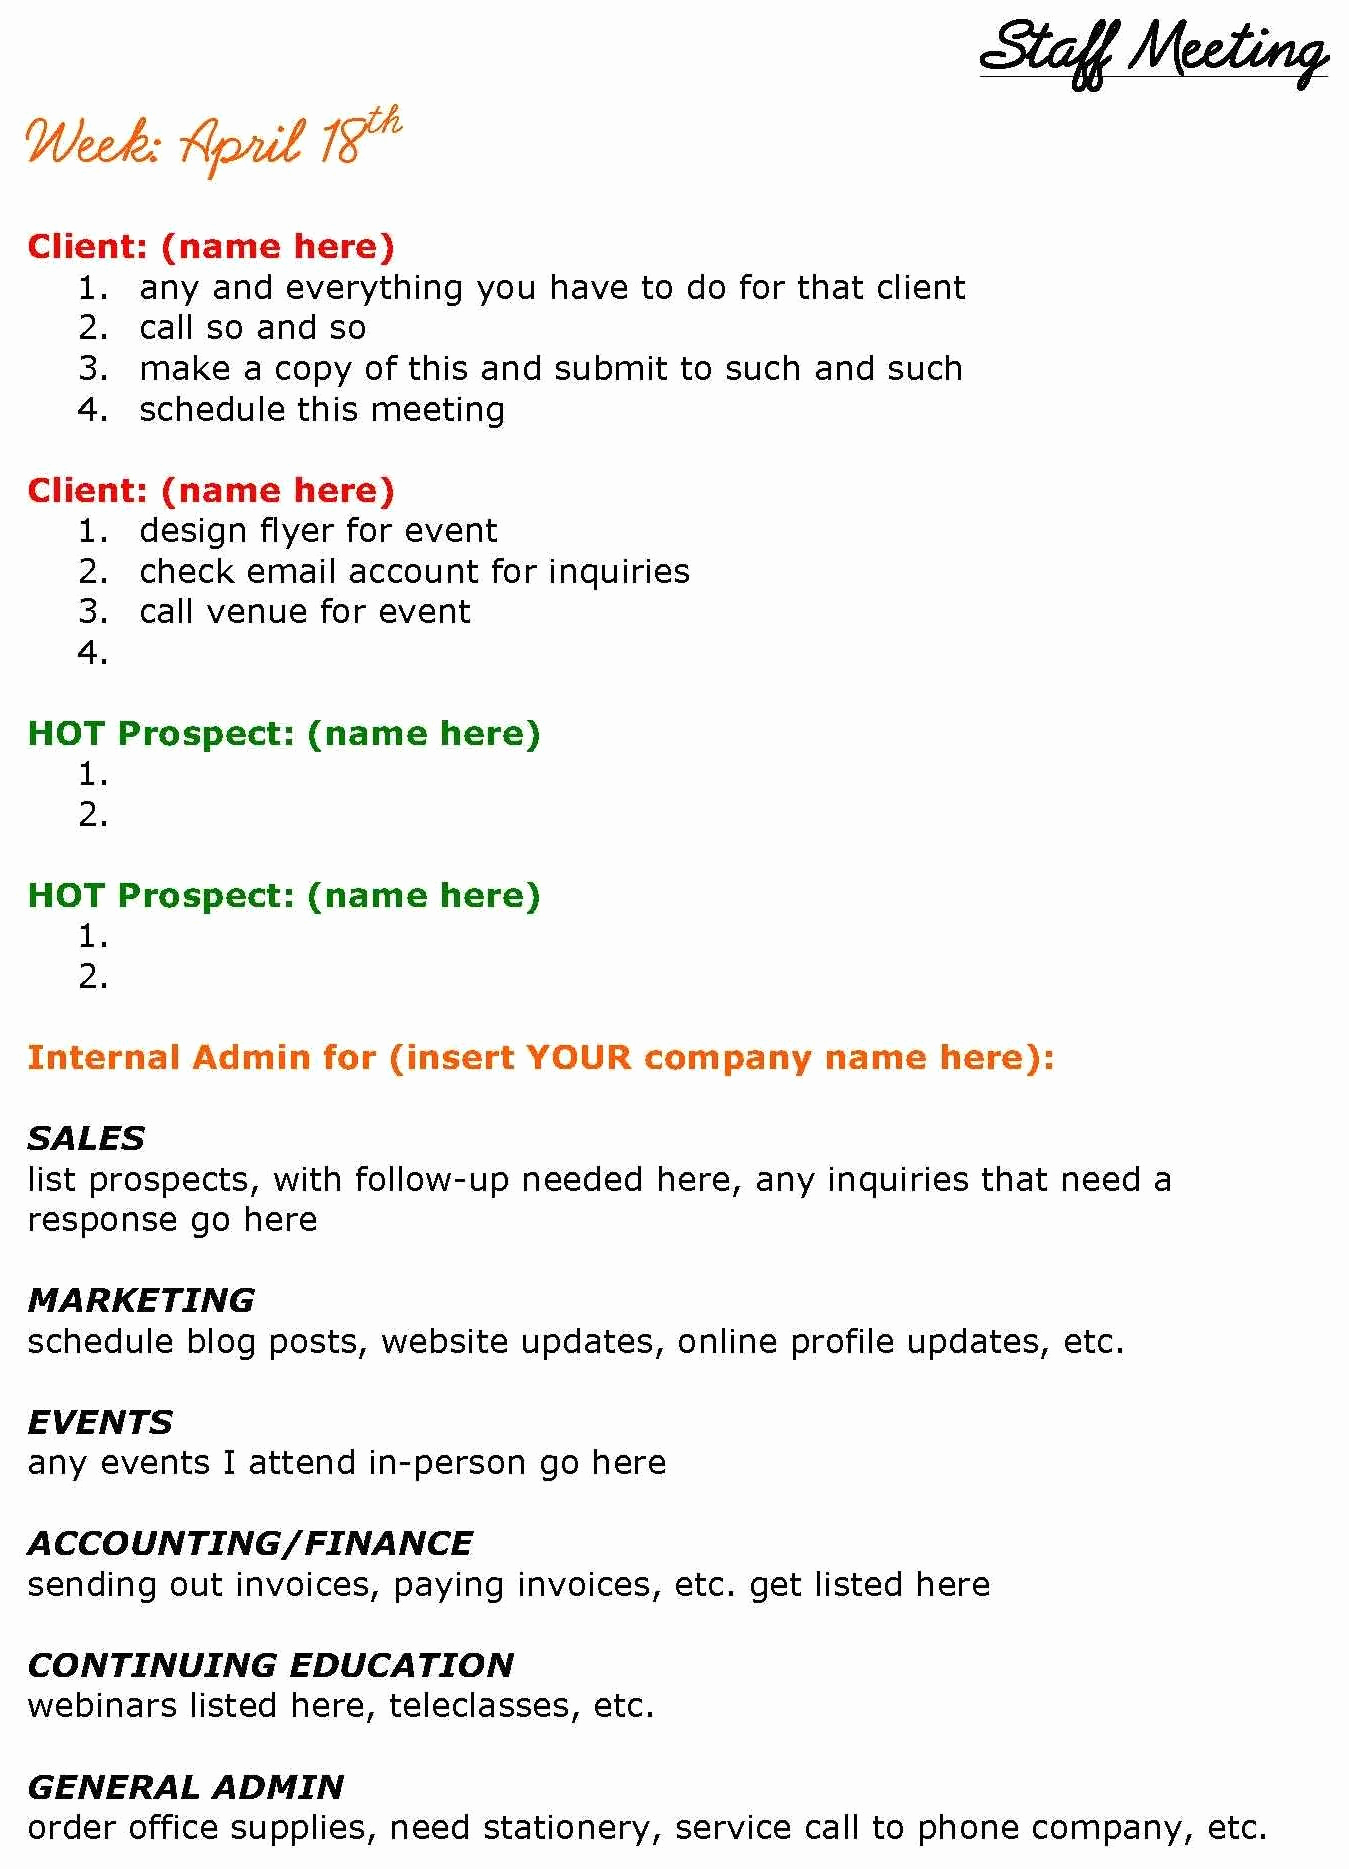 Staff Meetings Agenda Template Fresh solopreneurs Need Staff Meetings too See This Staff